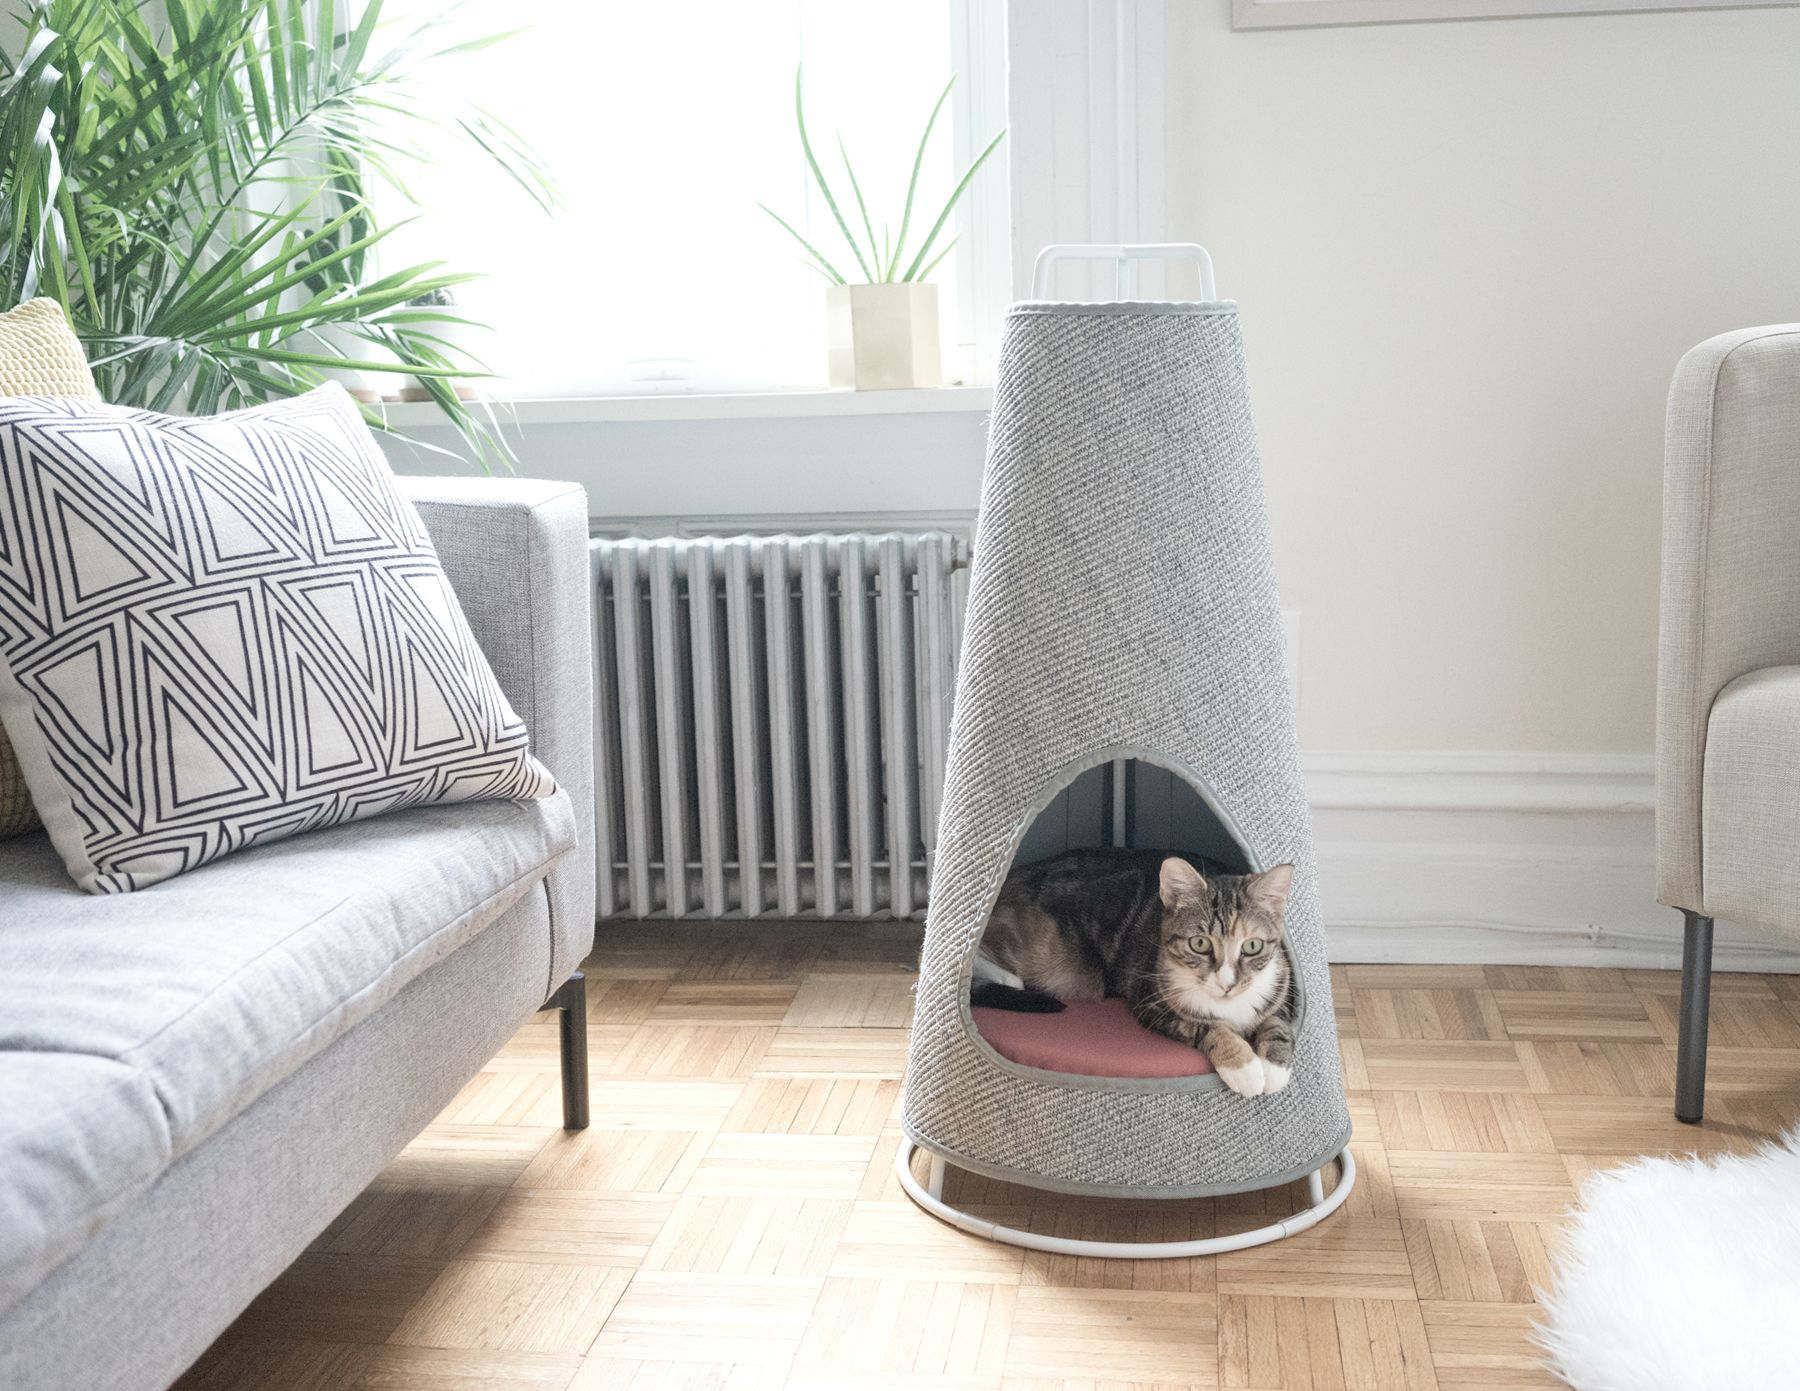 The Cone A Sleek Modern Cat Scratching Post That Doubles as a